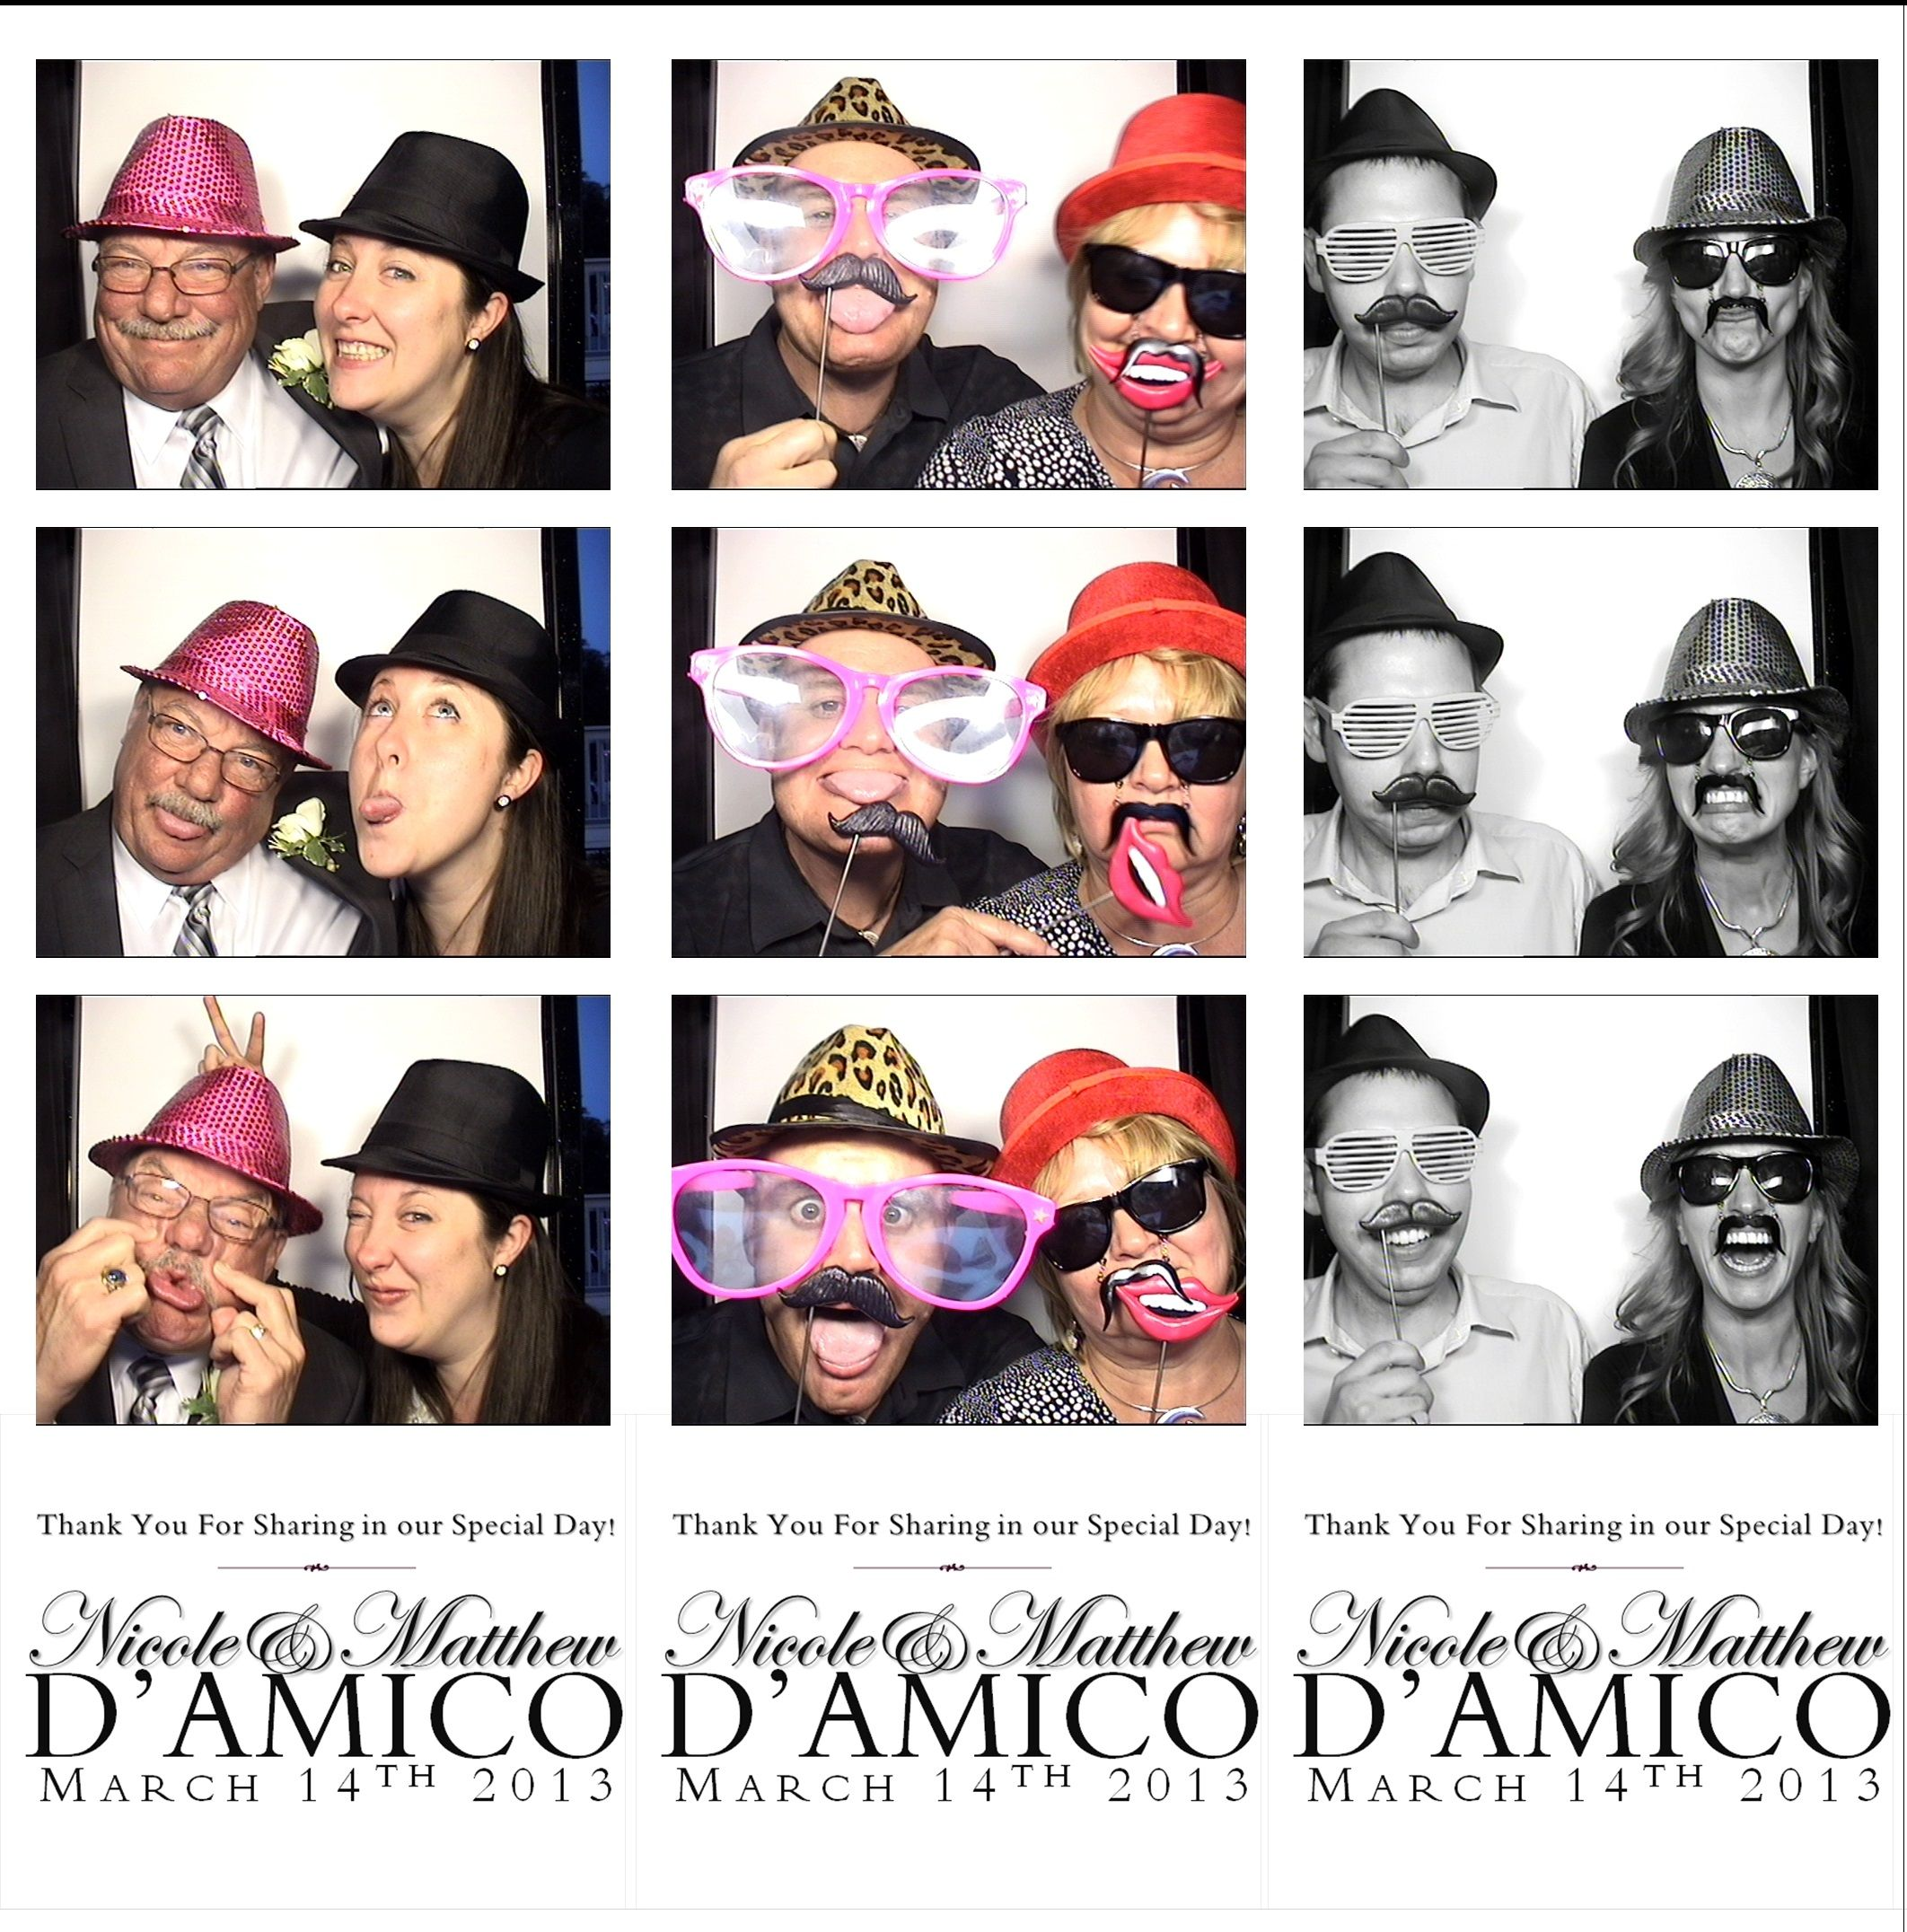 Every Friday Check Out All The Funny Photo Strips Taken With Photobooth Rocks